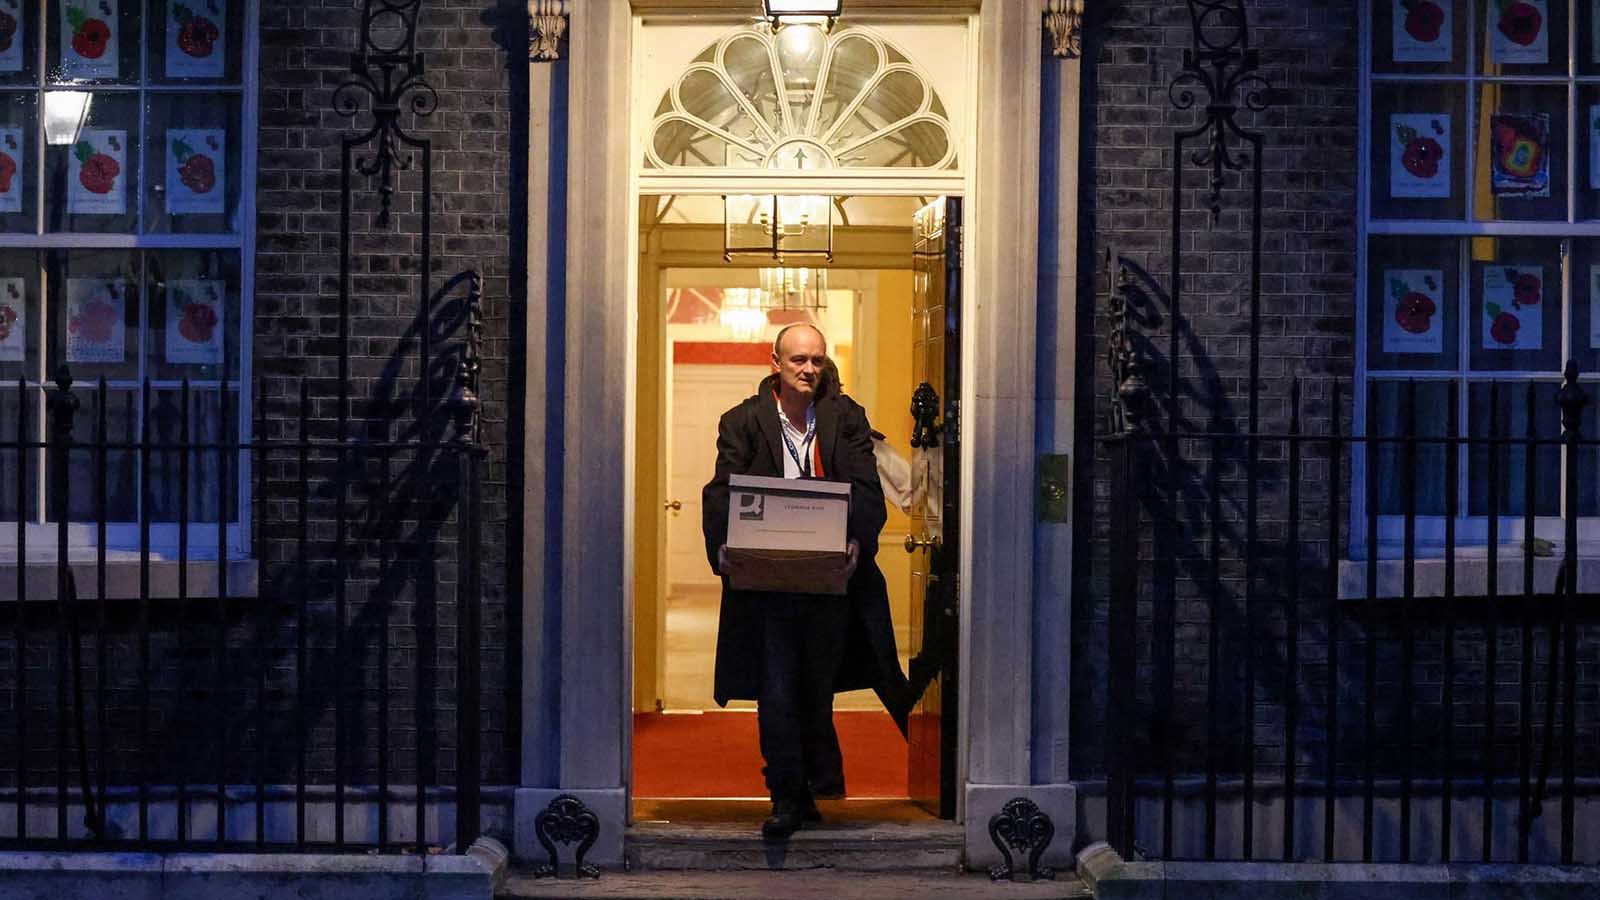 10 Downing Street is dealing with resignations left and right. But what exactly is causing so many staffers to leave?